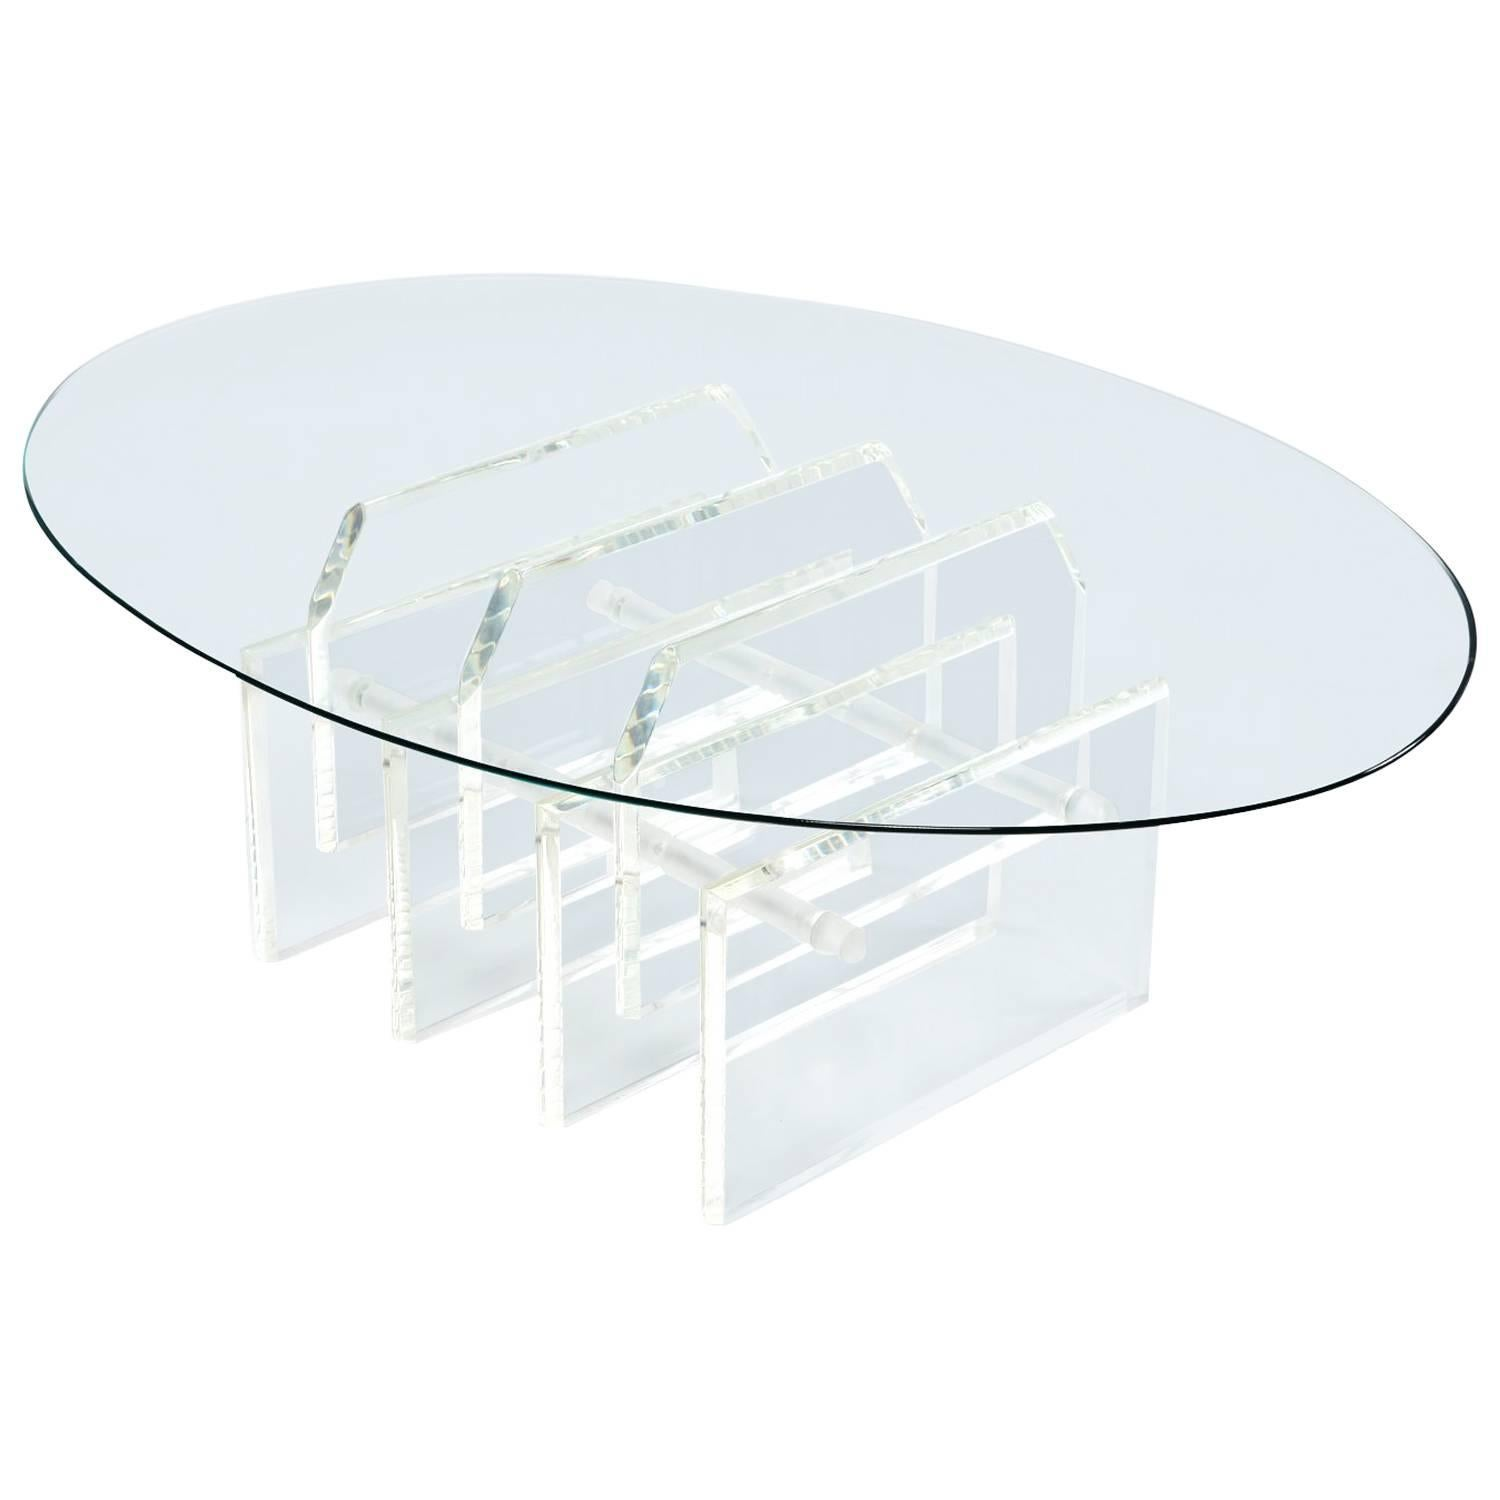 Lucite Coffee and Cocktail Tables 399 For Sale at 1stdibs